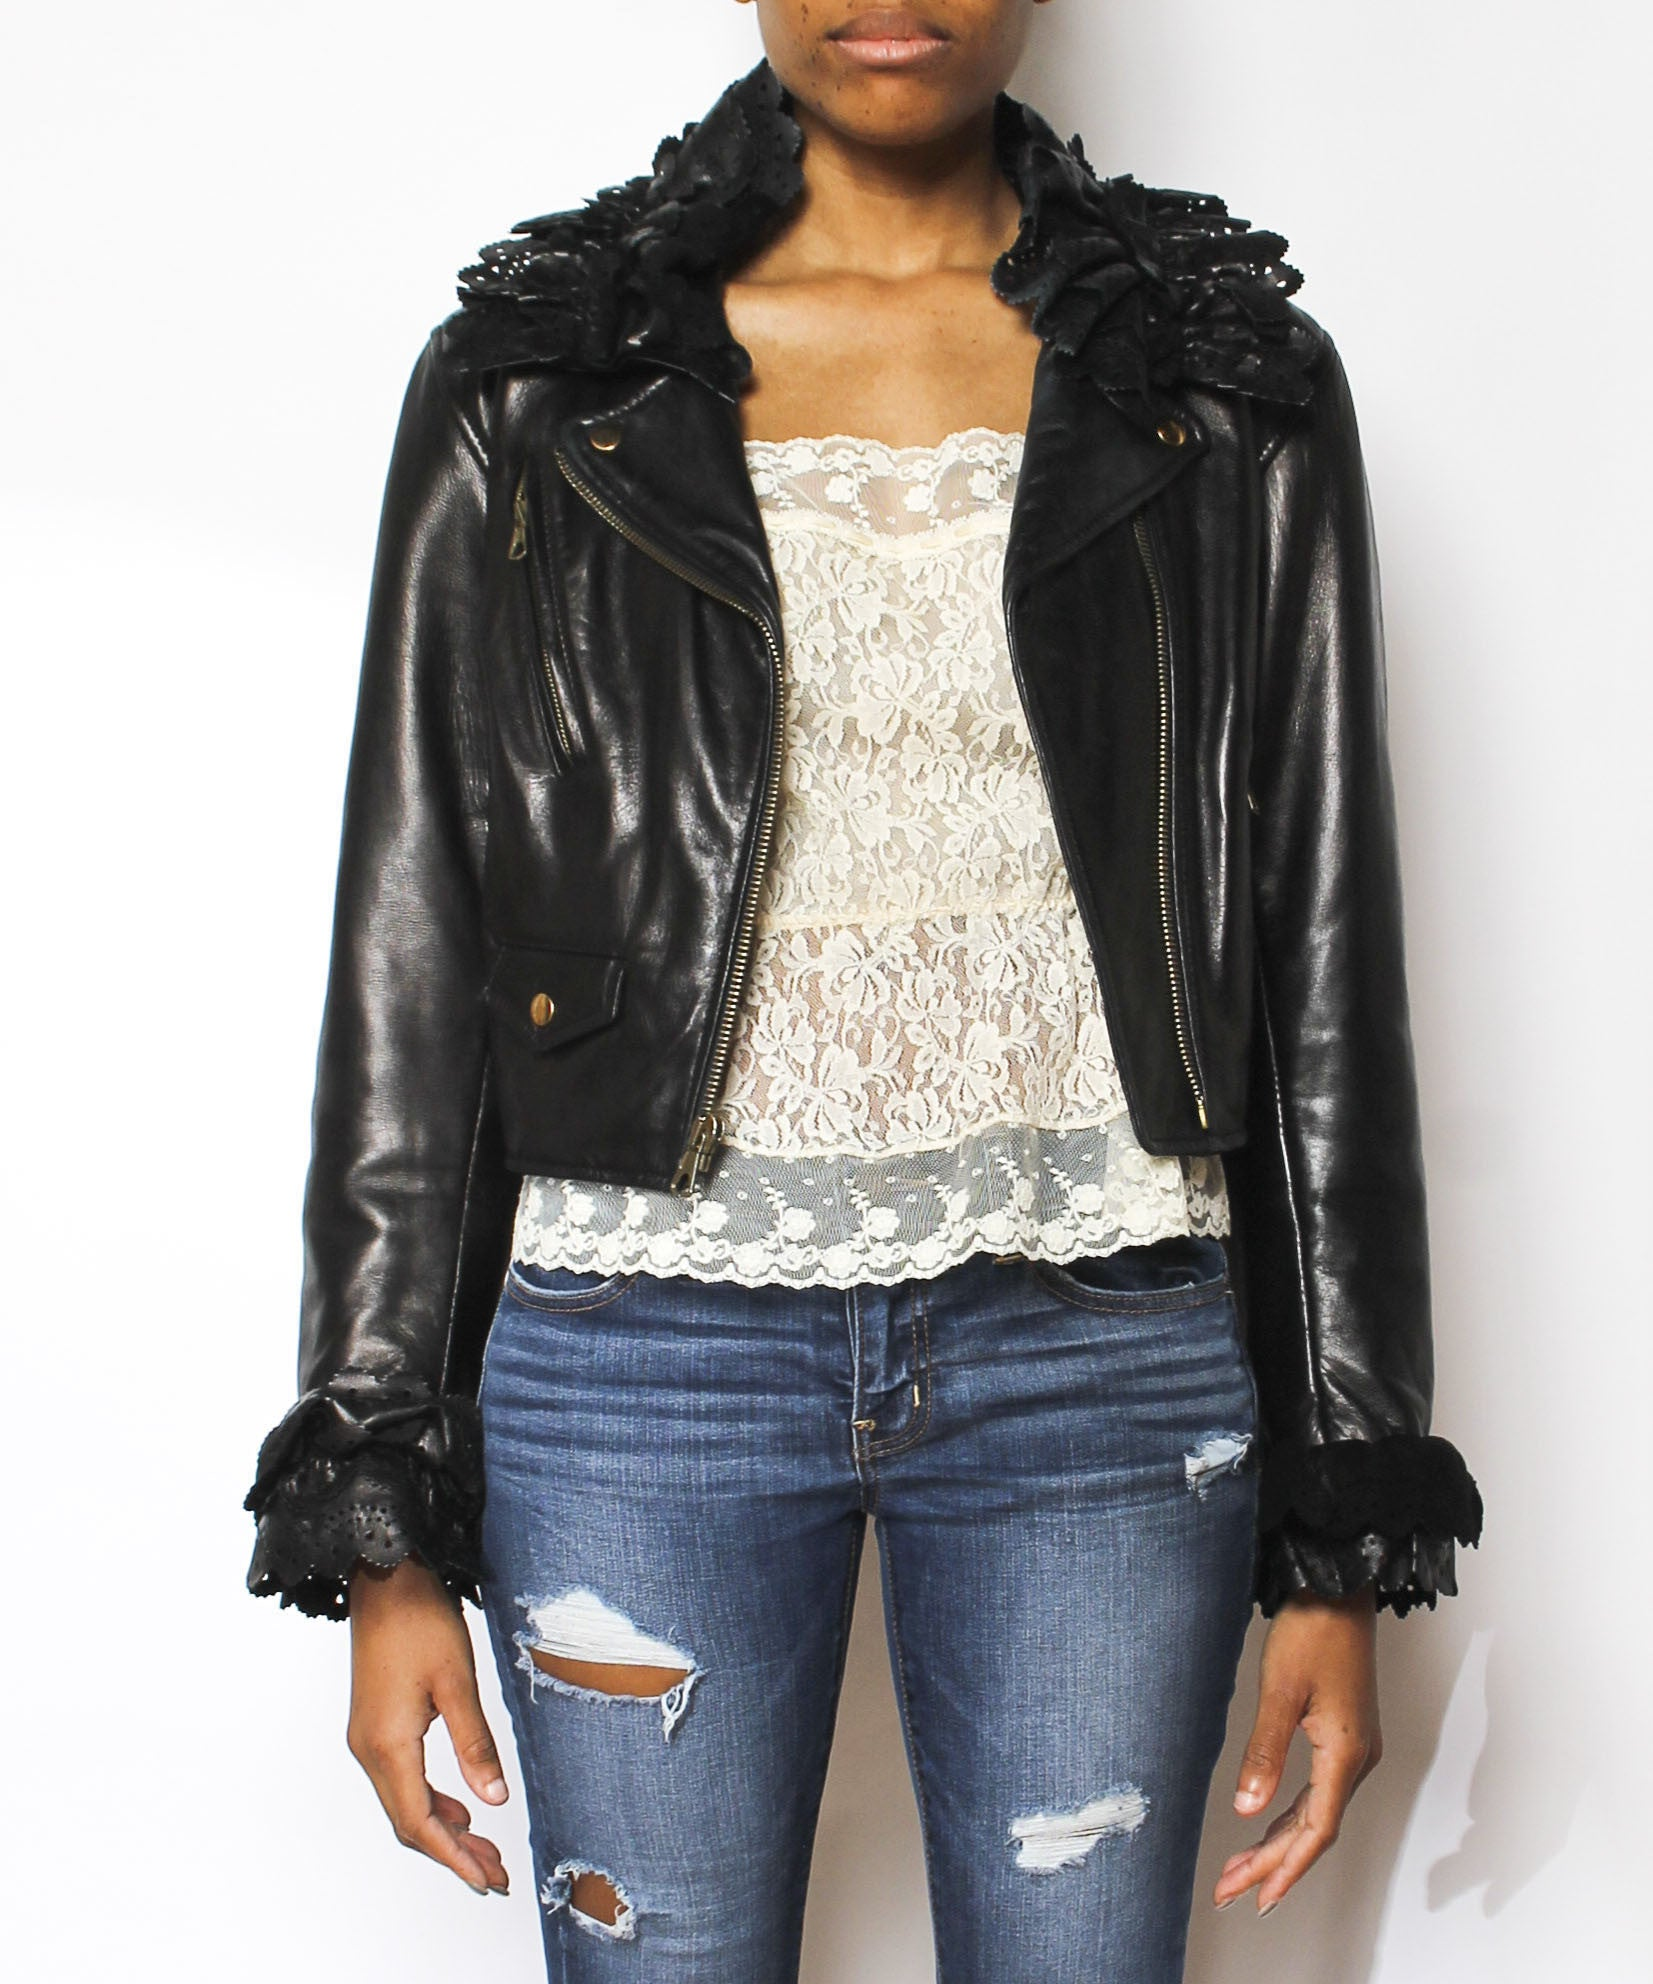 Moschino Leather Jacket with Ruffle Trim - C.Madeleine's